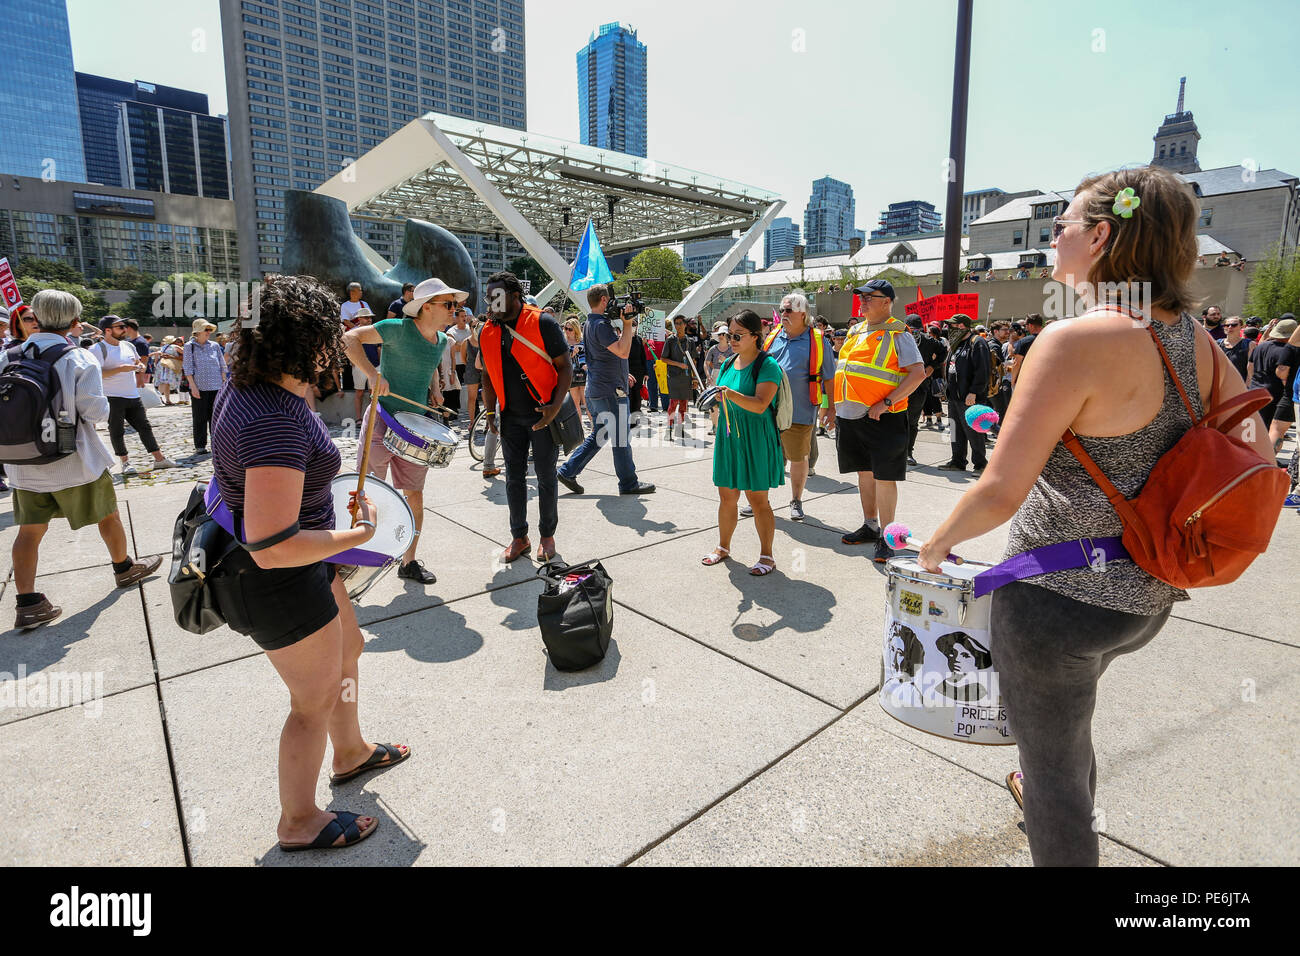 AUGUST 11, 2018 - TORONTO, CANADA: 'STOP THE HATE' ANTI RACISM RALLY. - Stock Image